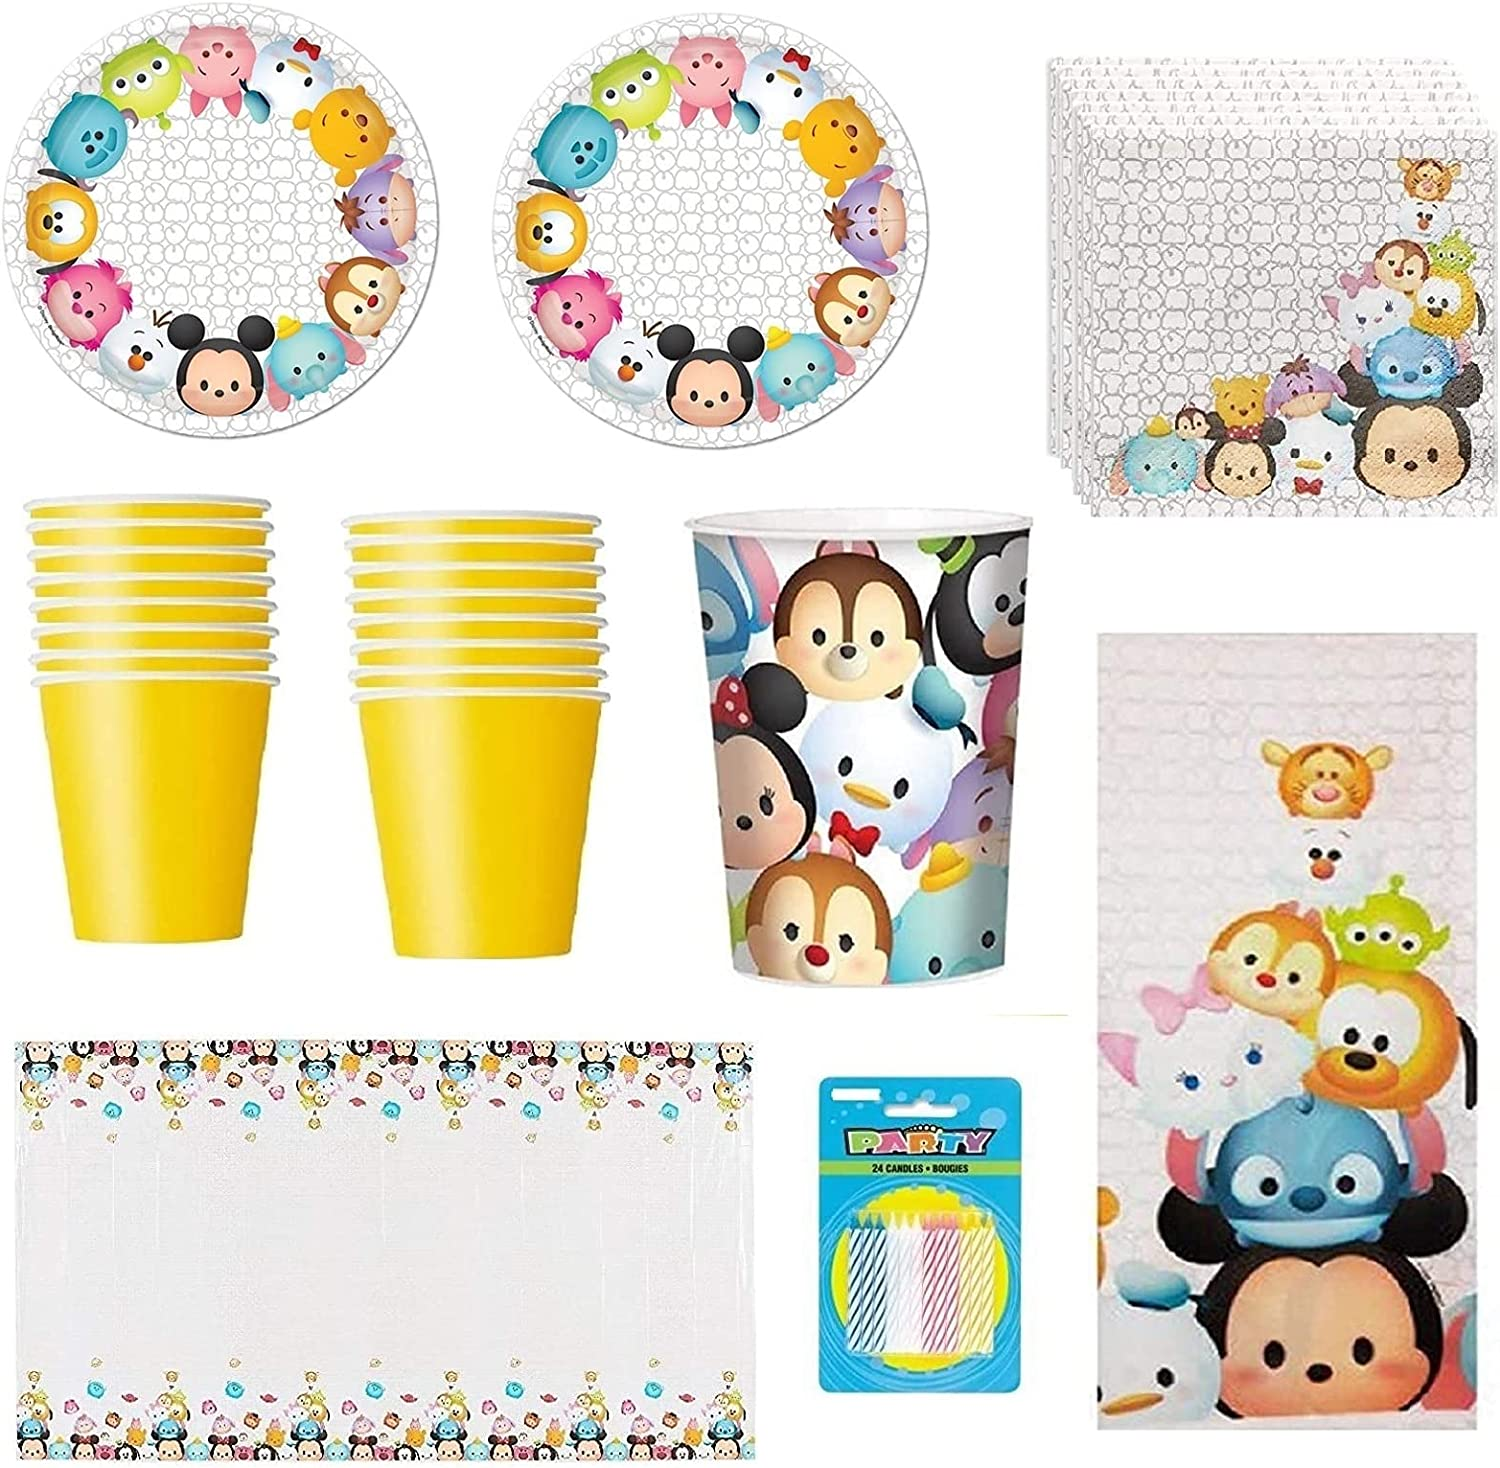 Tsum Birthday Party Supply Bundle 蔵 for 16 新作製品 世界最高品質人気 Plate Set includes